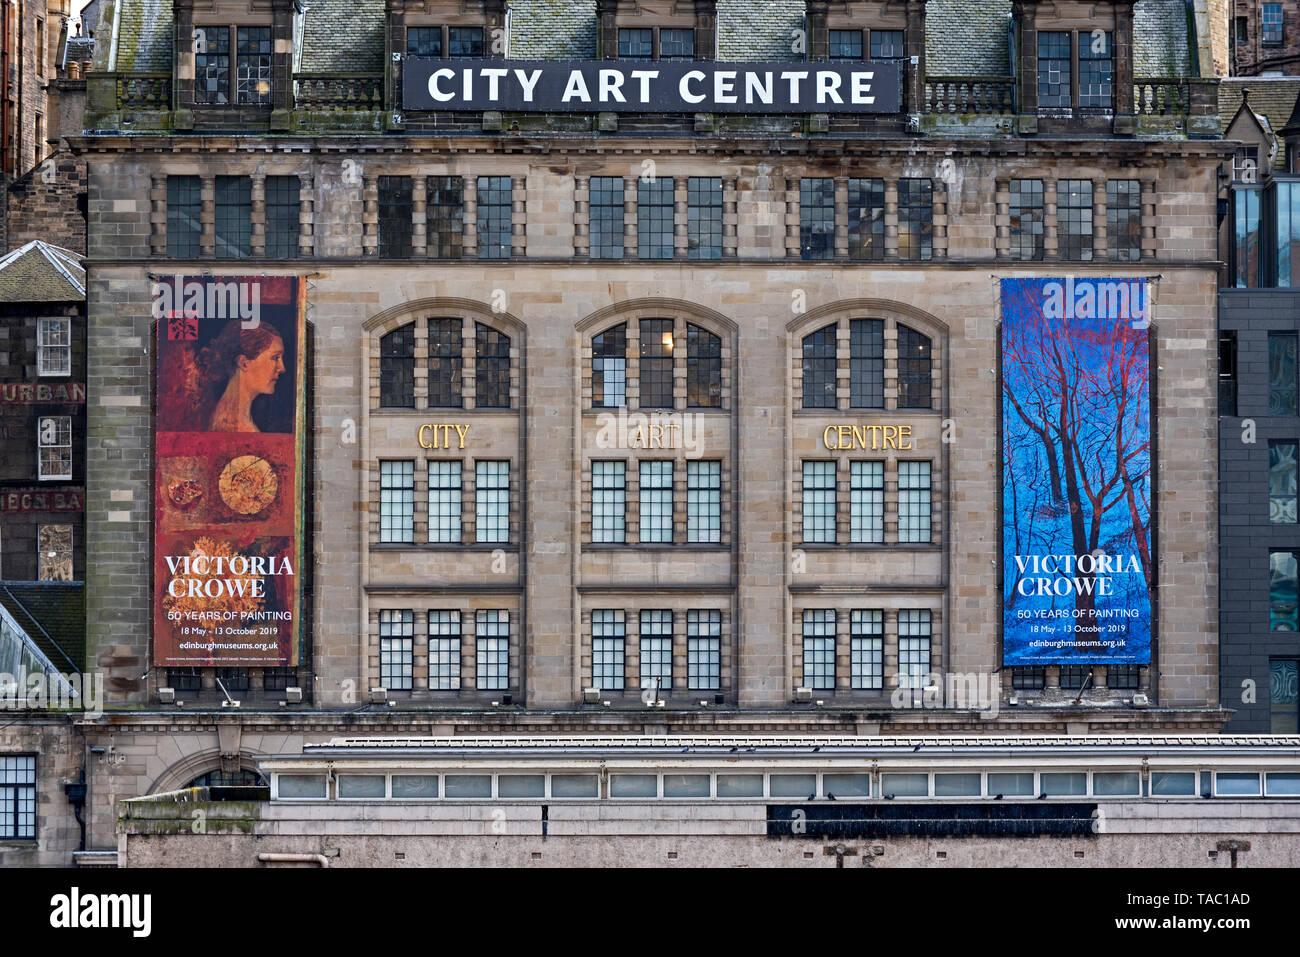 Banners for the Victoria Crowe exhibition, '50 Years of Painting', on the outside of the City Art Centre in Edinburgh's Old Town. - Stock Image